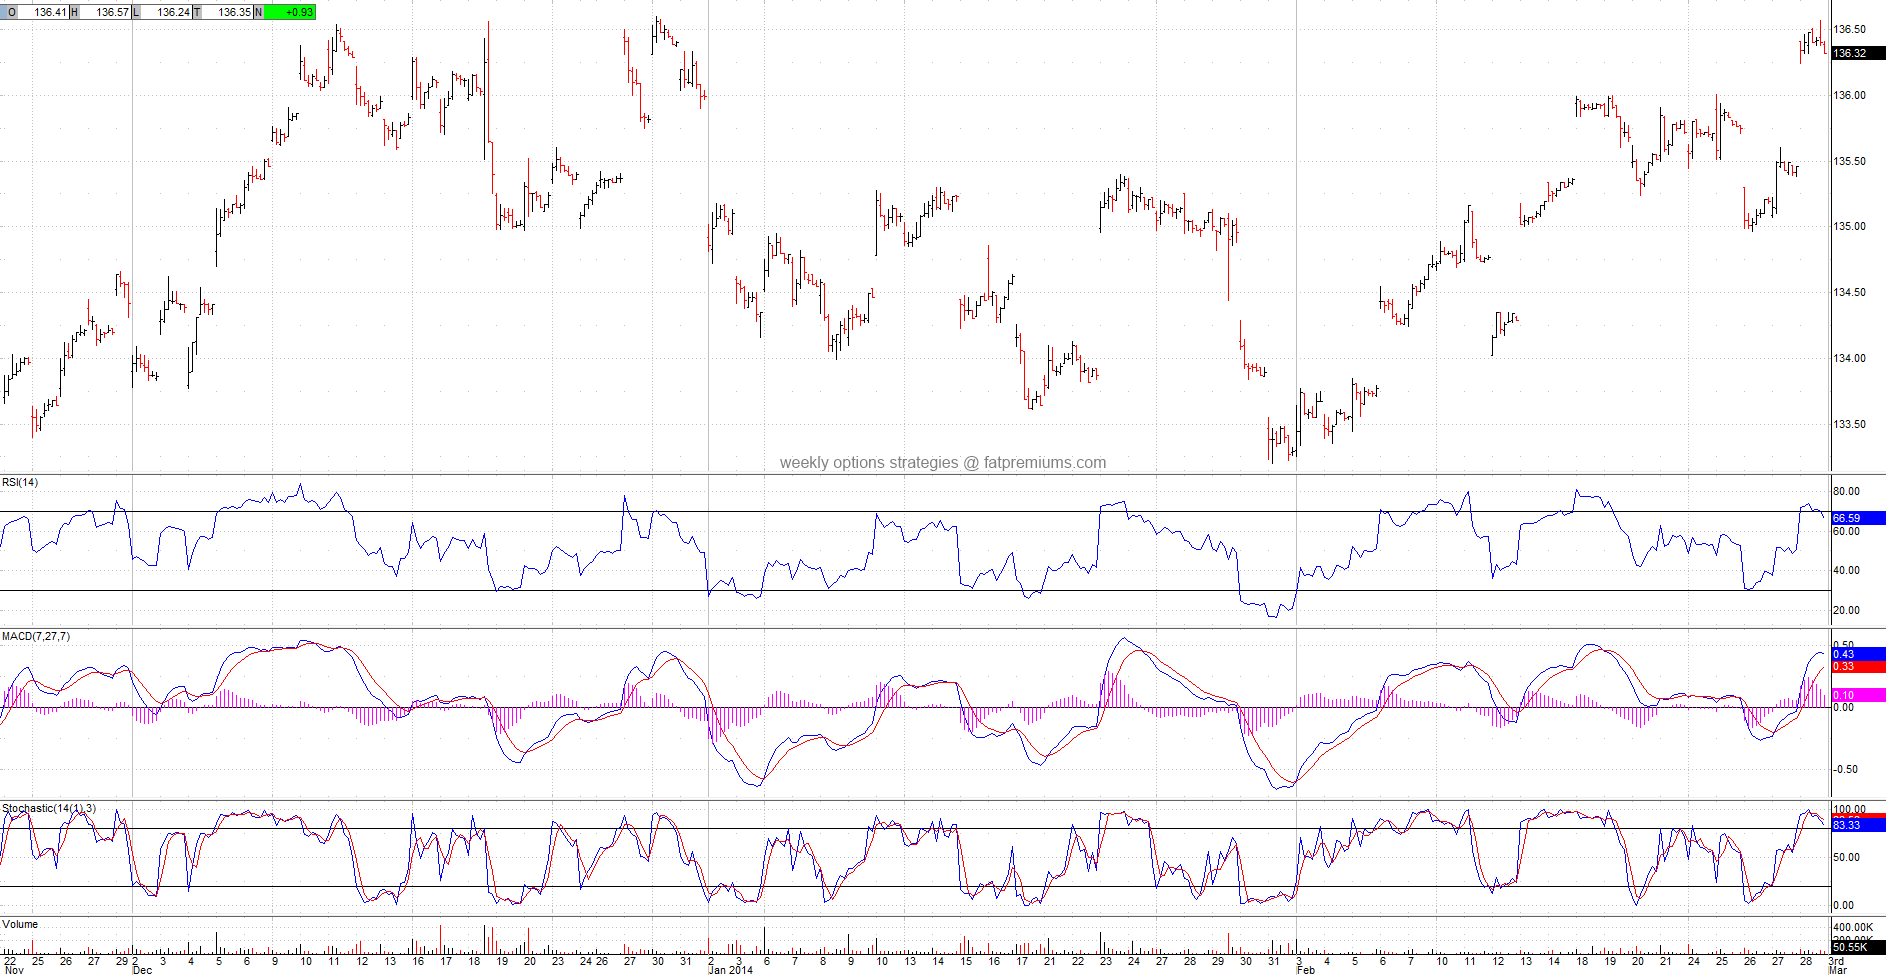 Euro Trust (NYSEARCA:FXE) Hourly Chart (2014-02-28) Bearish